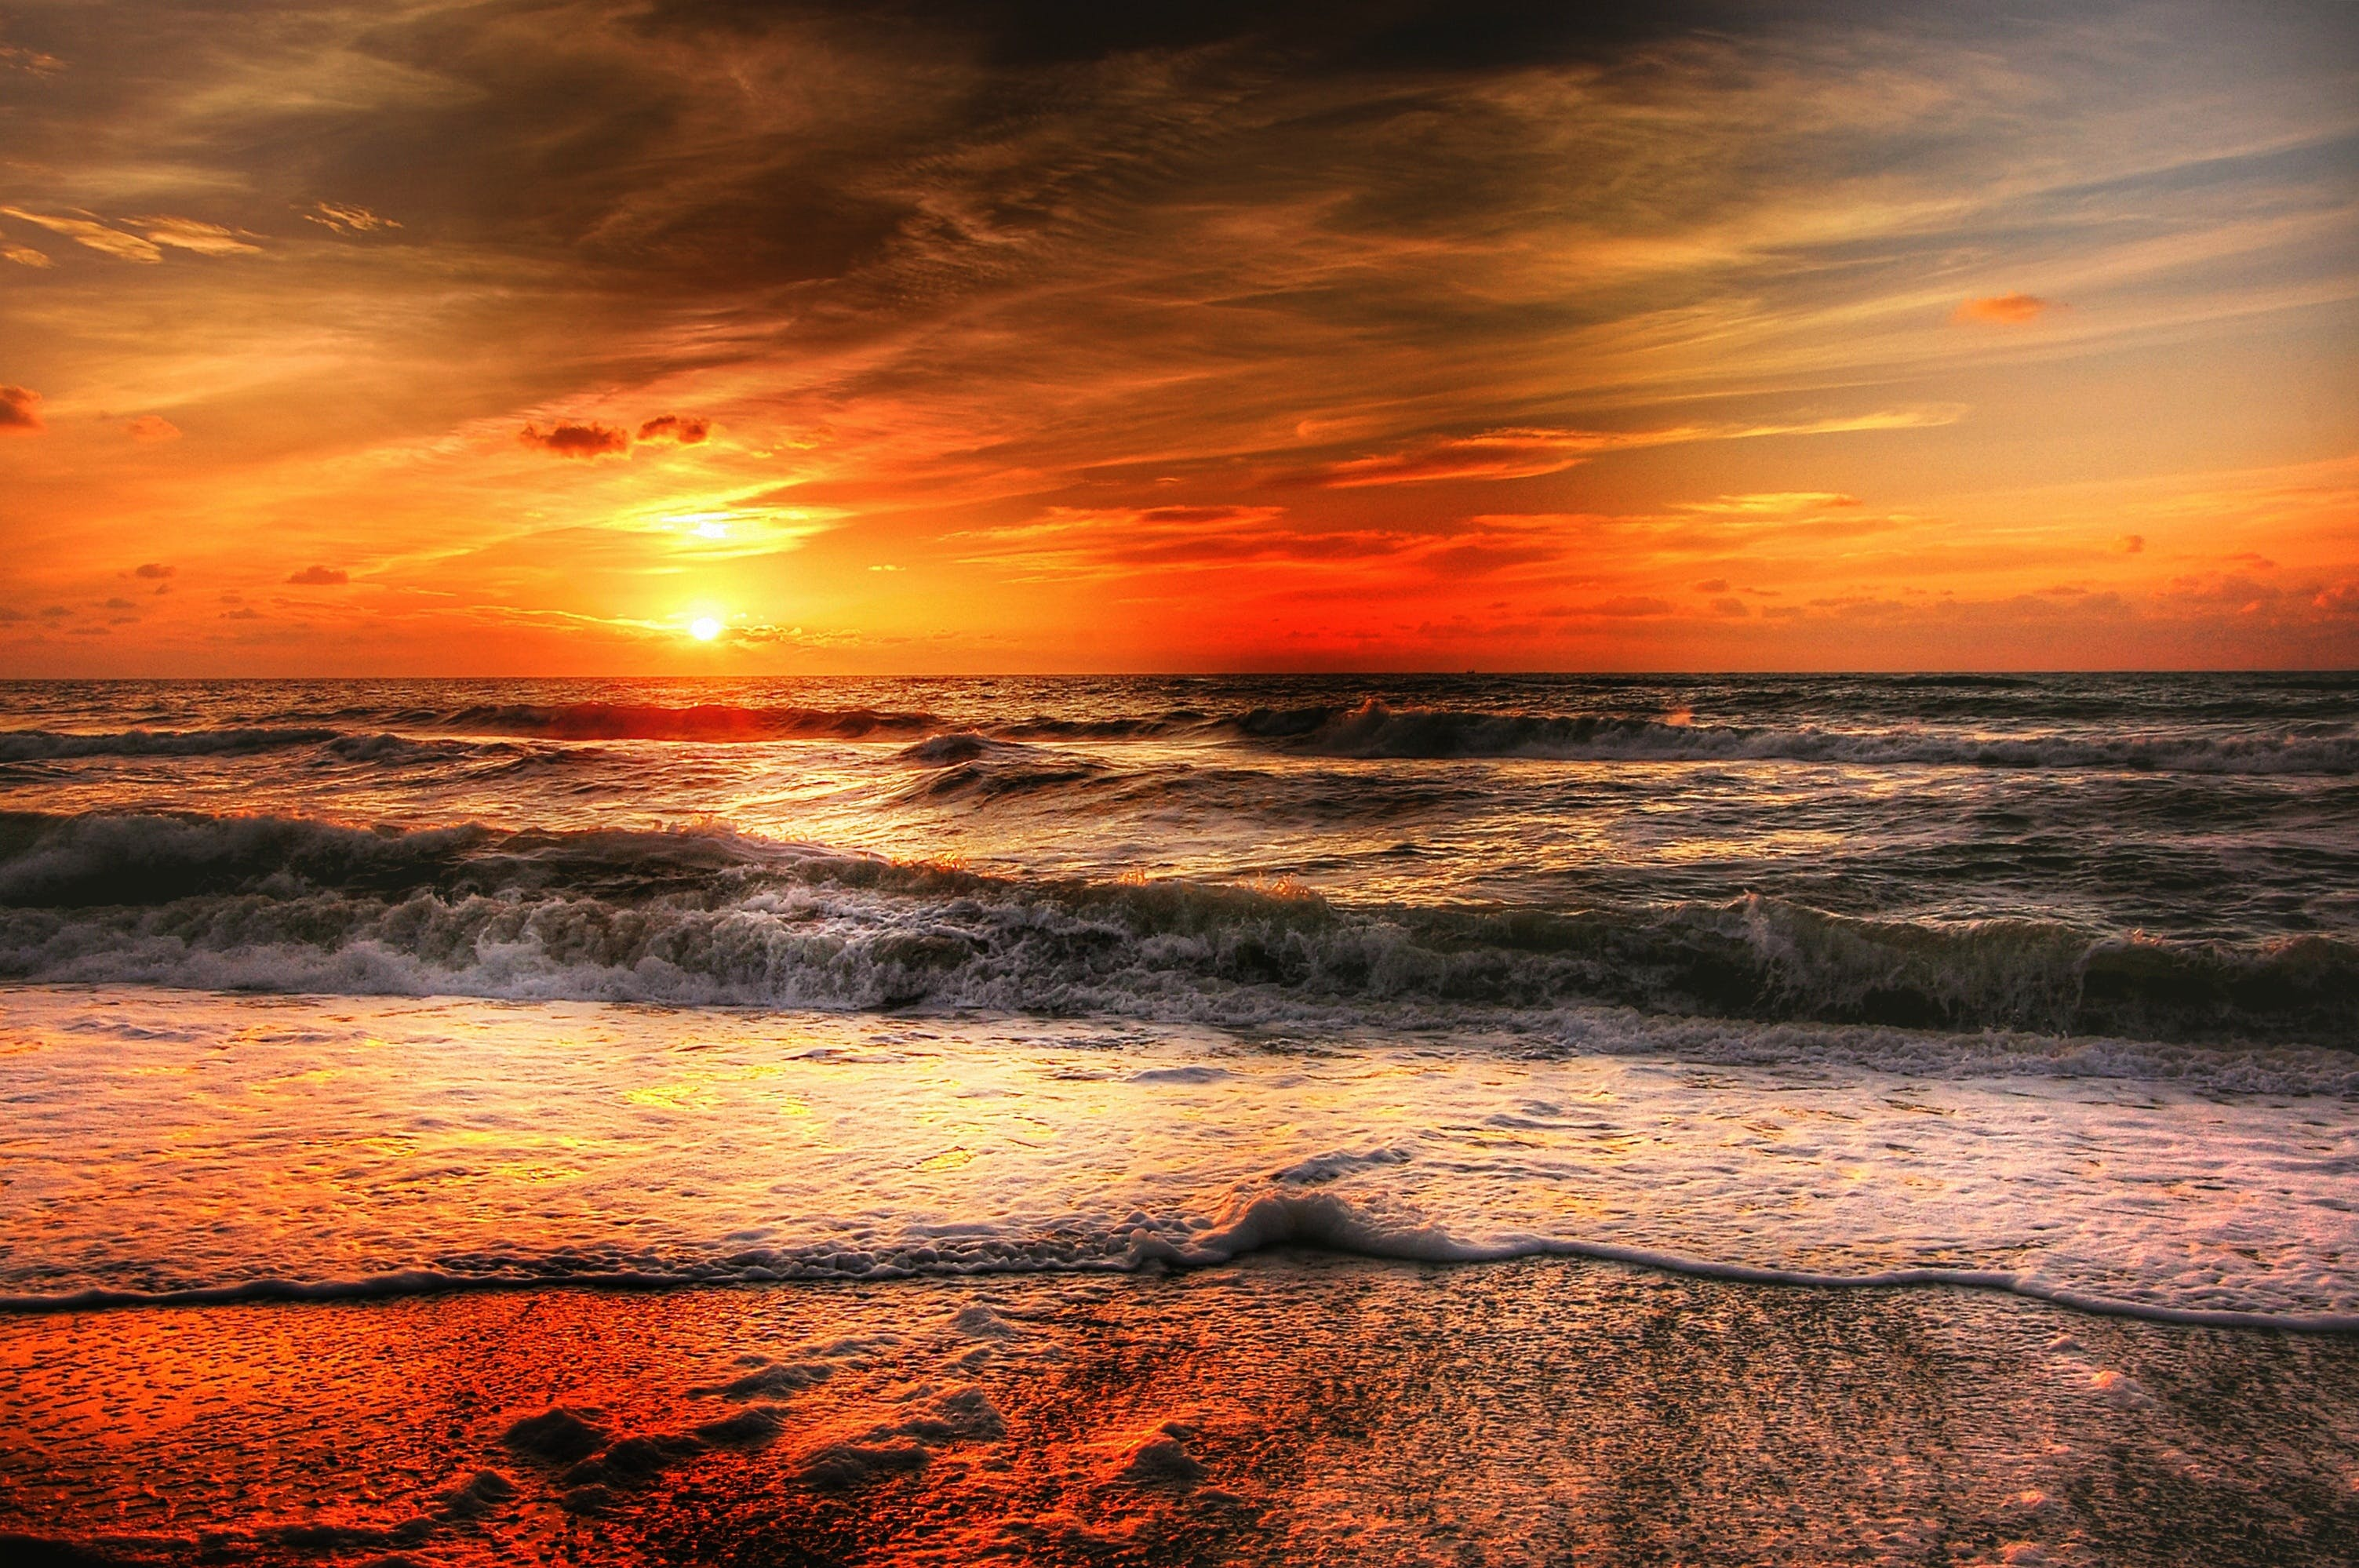 Sea Waves and Sunset